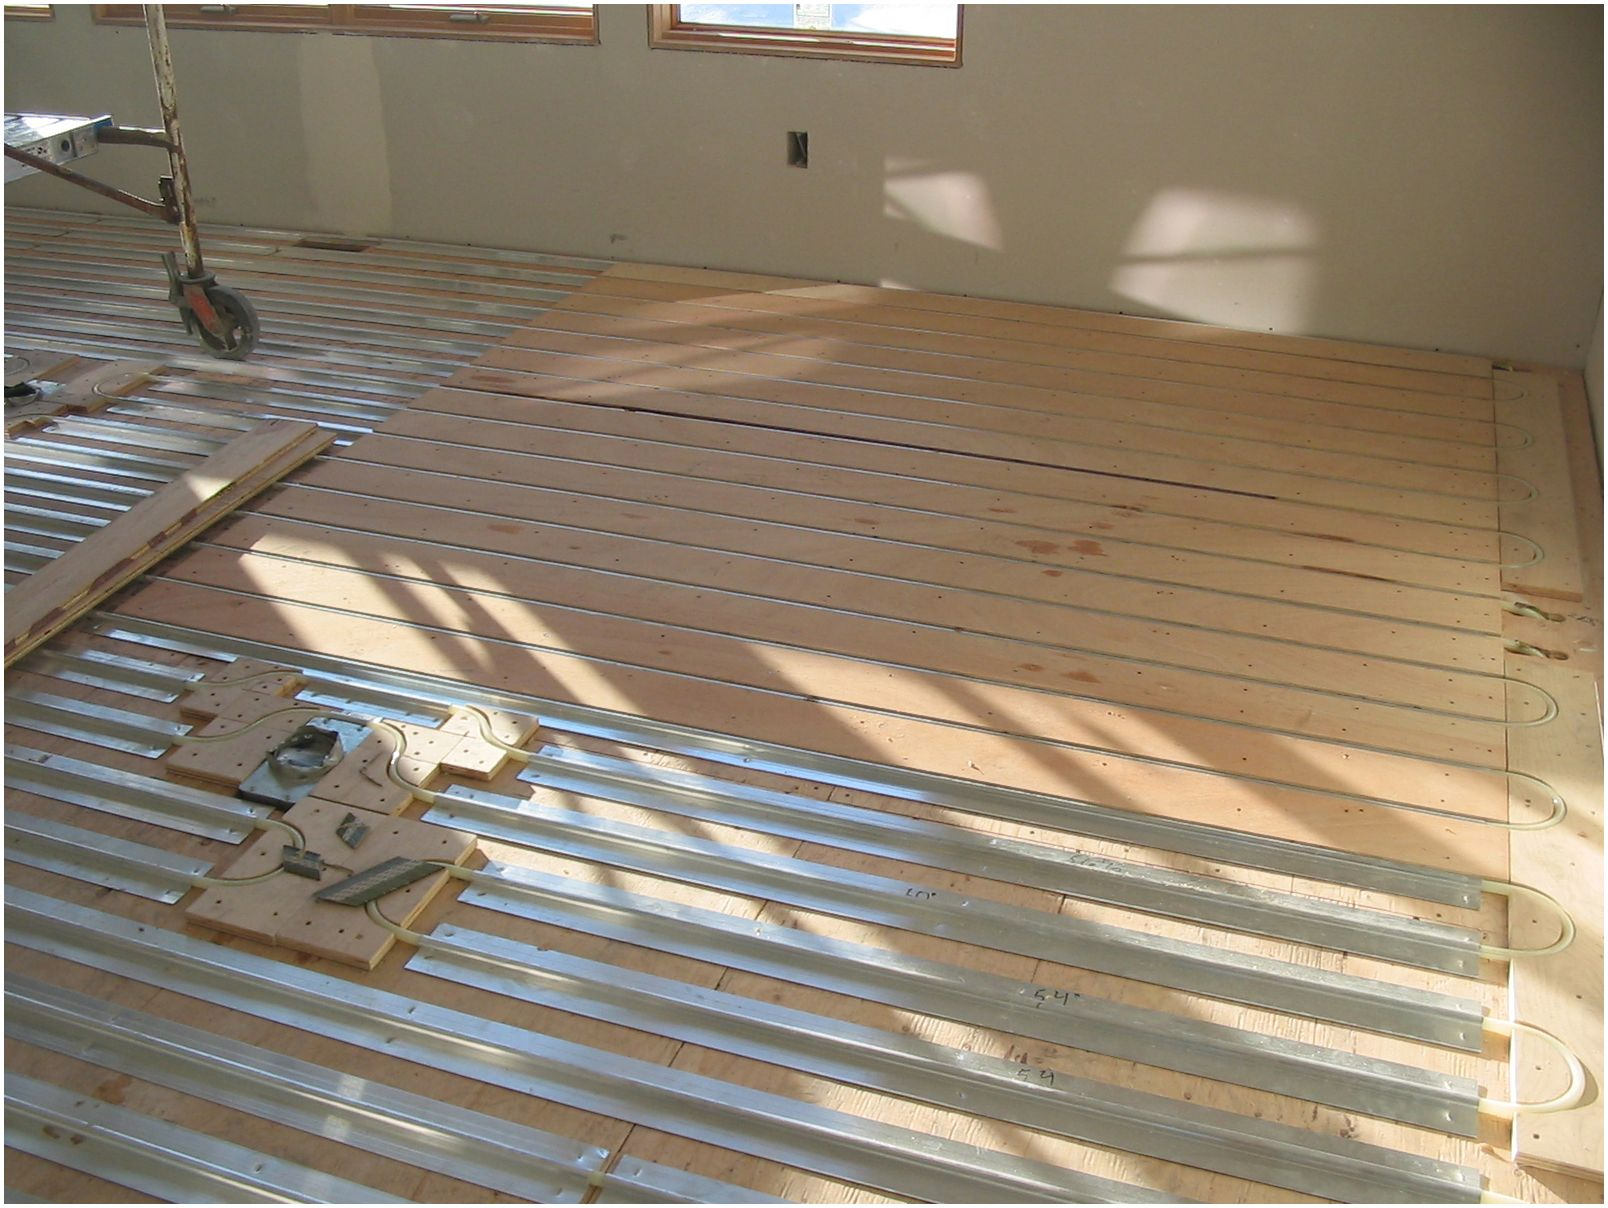 Thermofin U Aluminum Heat Transfer Plates With Pex Tubing And Plywood Sleepers Are Installed For In F Radiant Floor Heating Radiant Heat Radiant Heating System